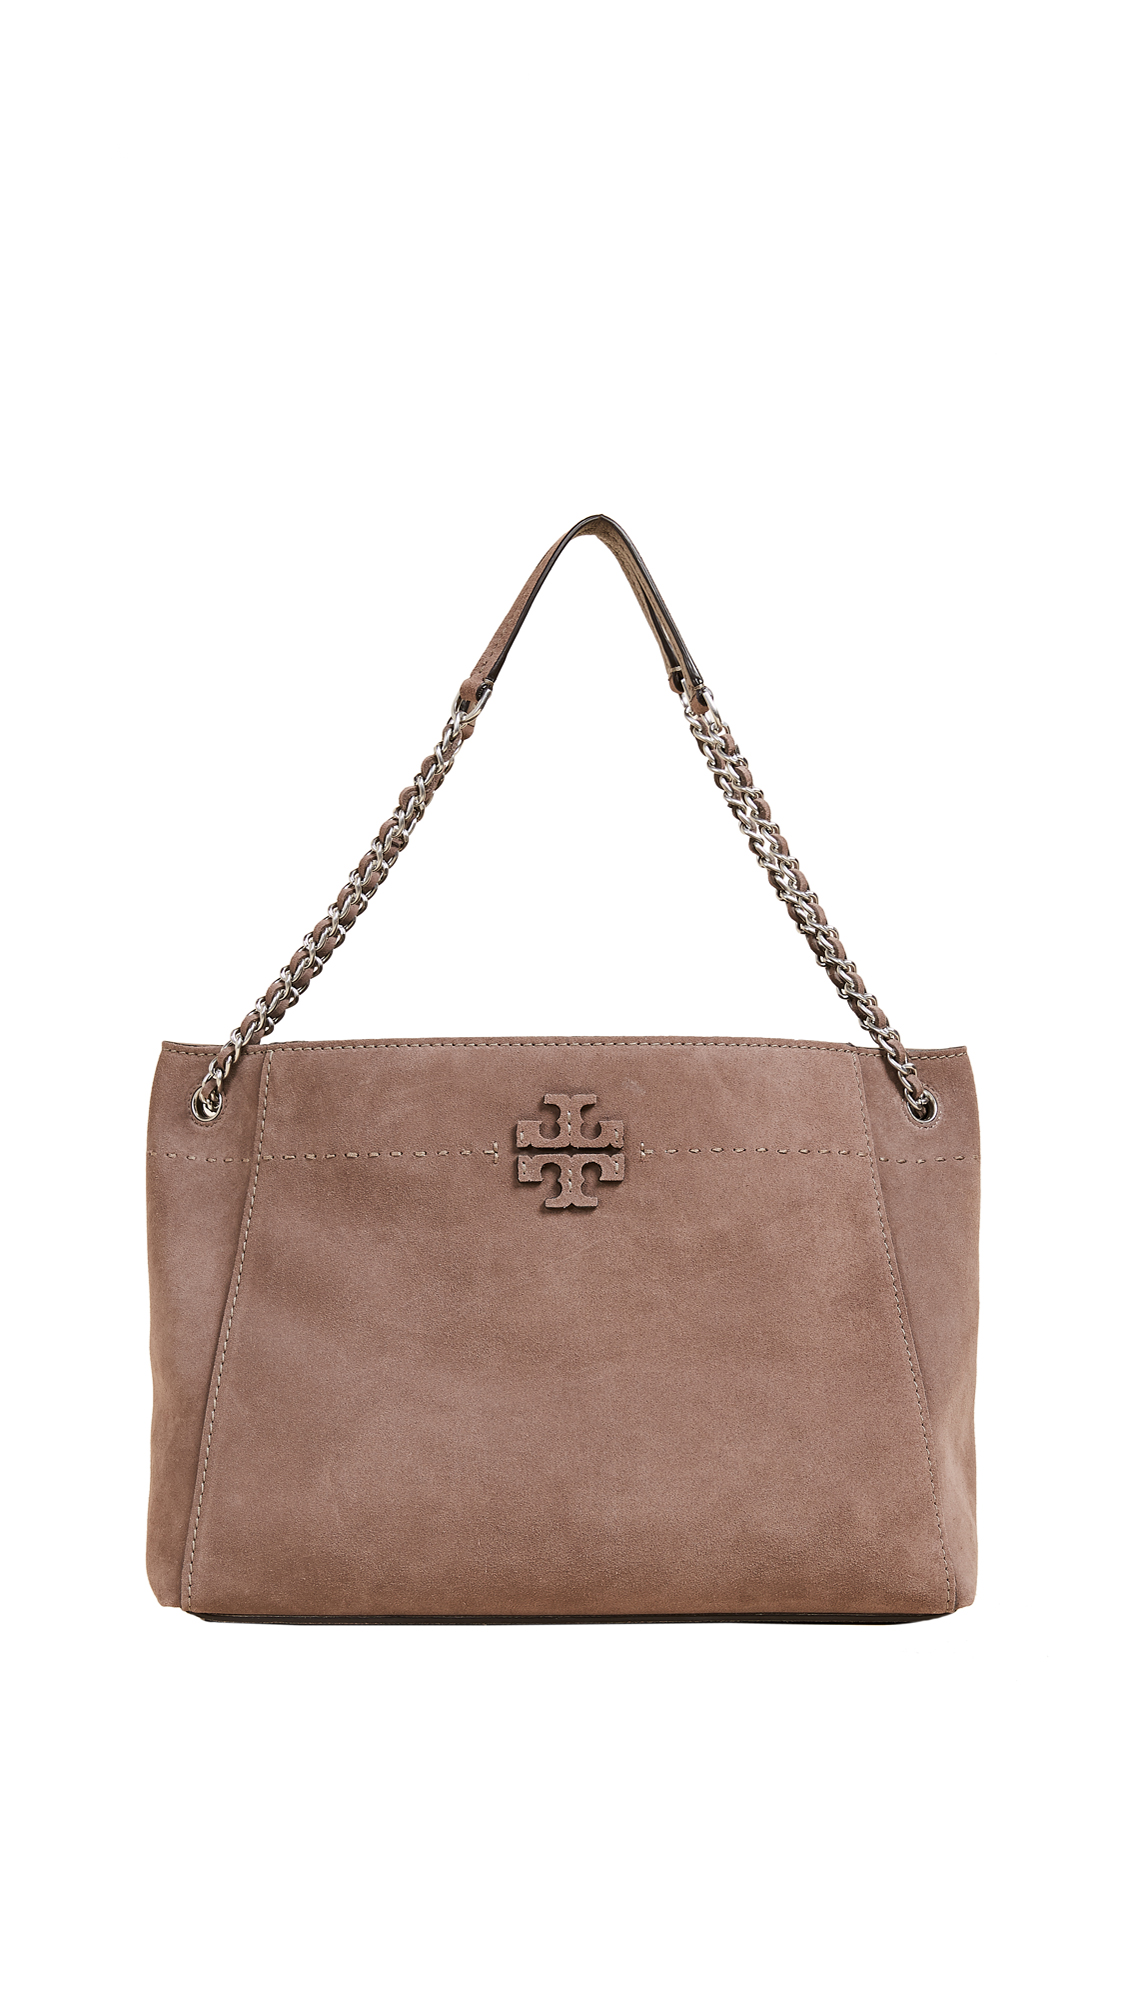 Tory Burch Mcgraw Suede Chain Shoulder Slouchy Tote - Silver Maple